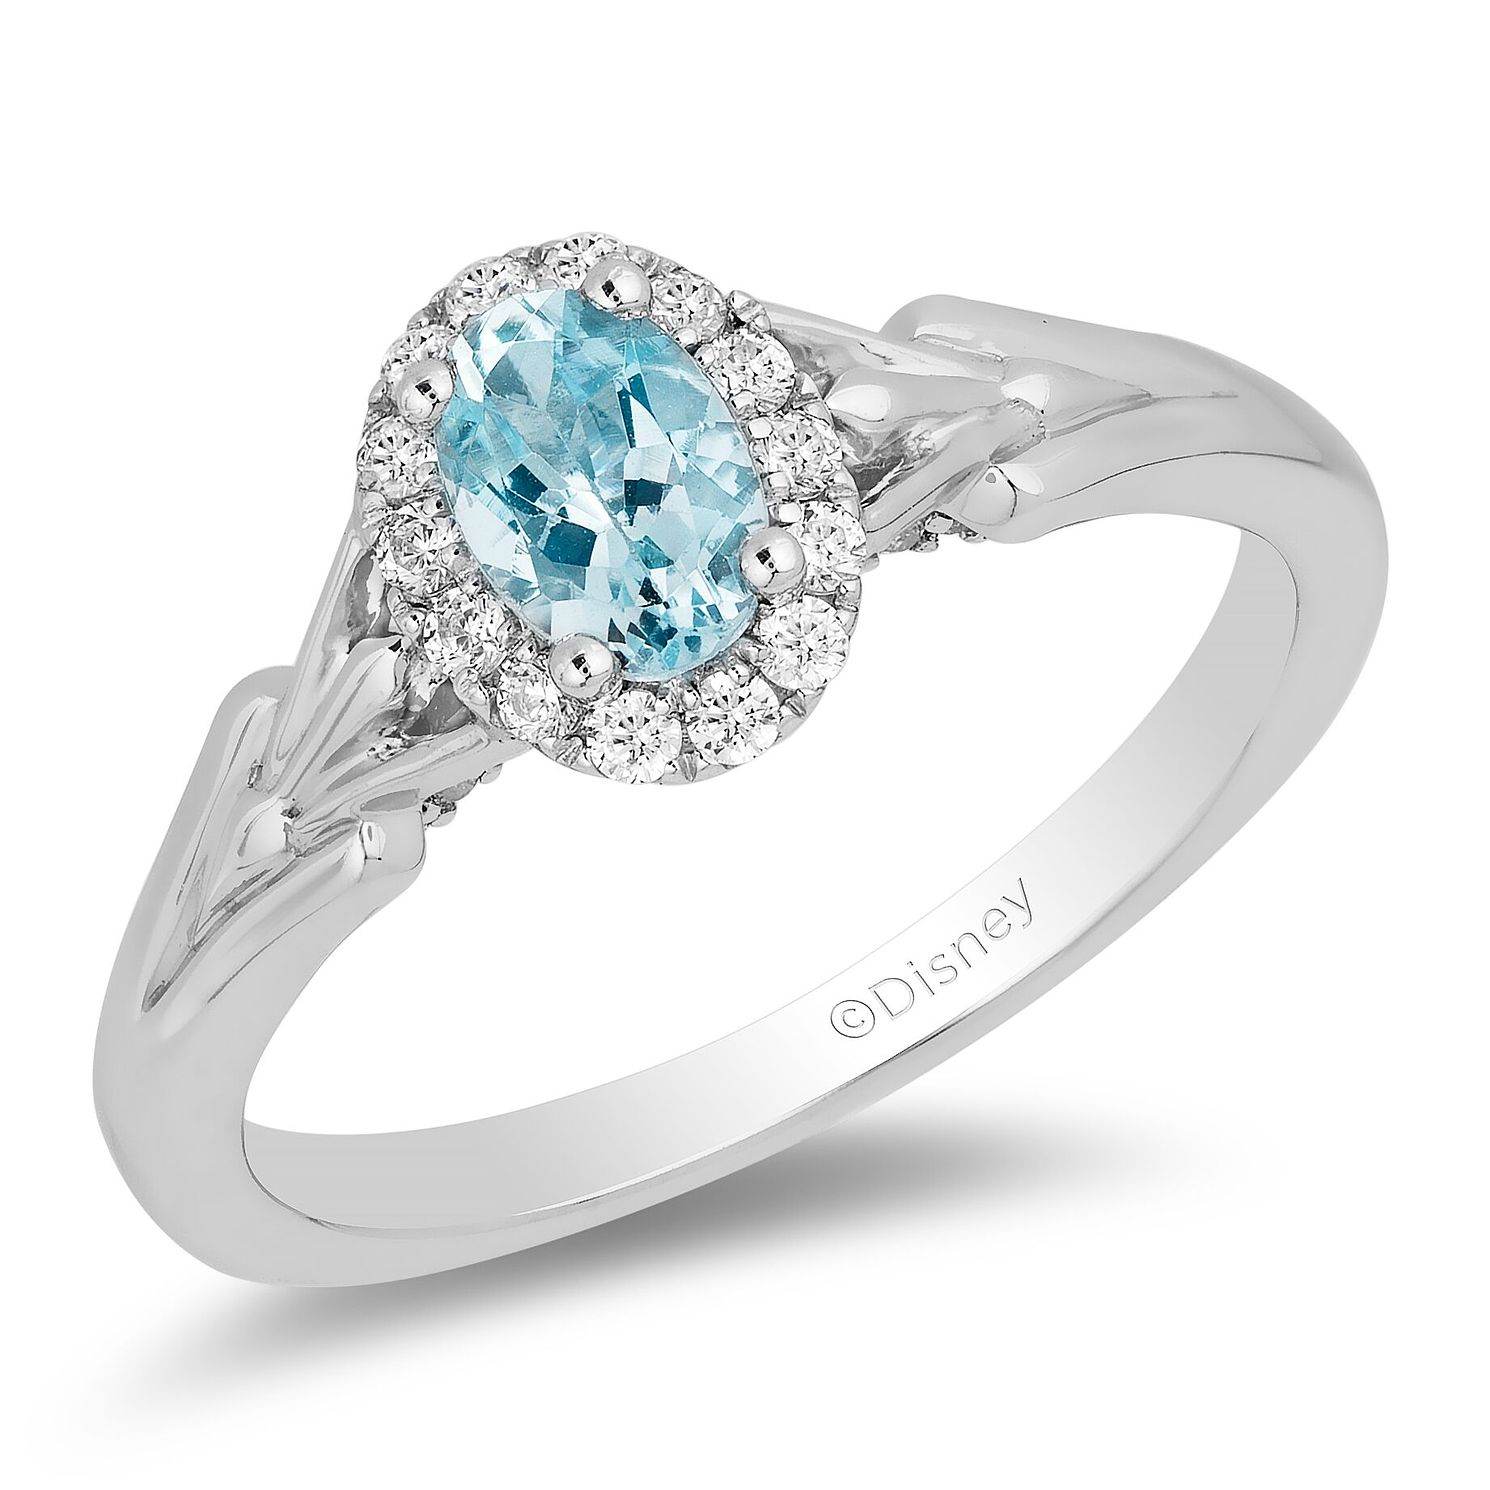 Enchanted Disney Fine Jewelry Diamond Aquamarine Elsa Ring - Product number 4674278